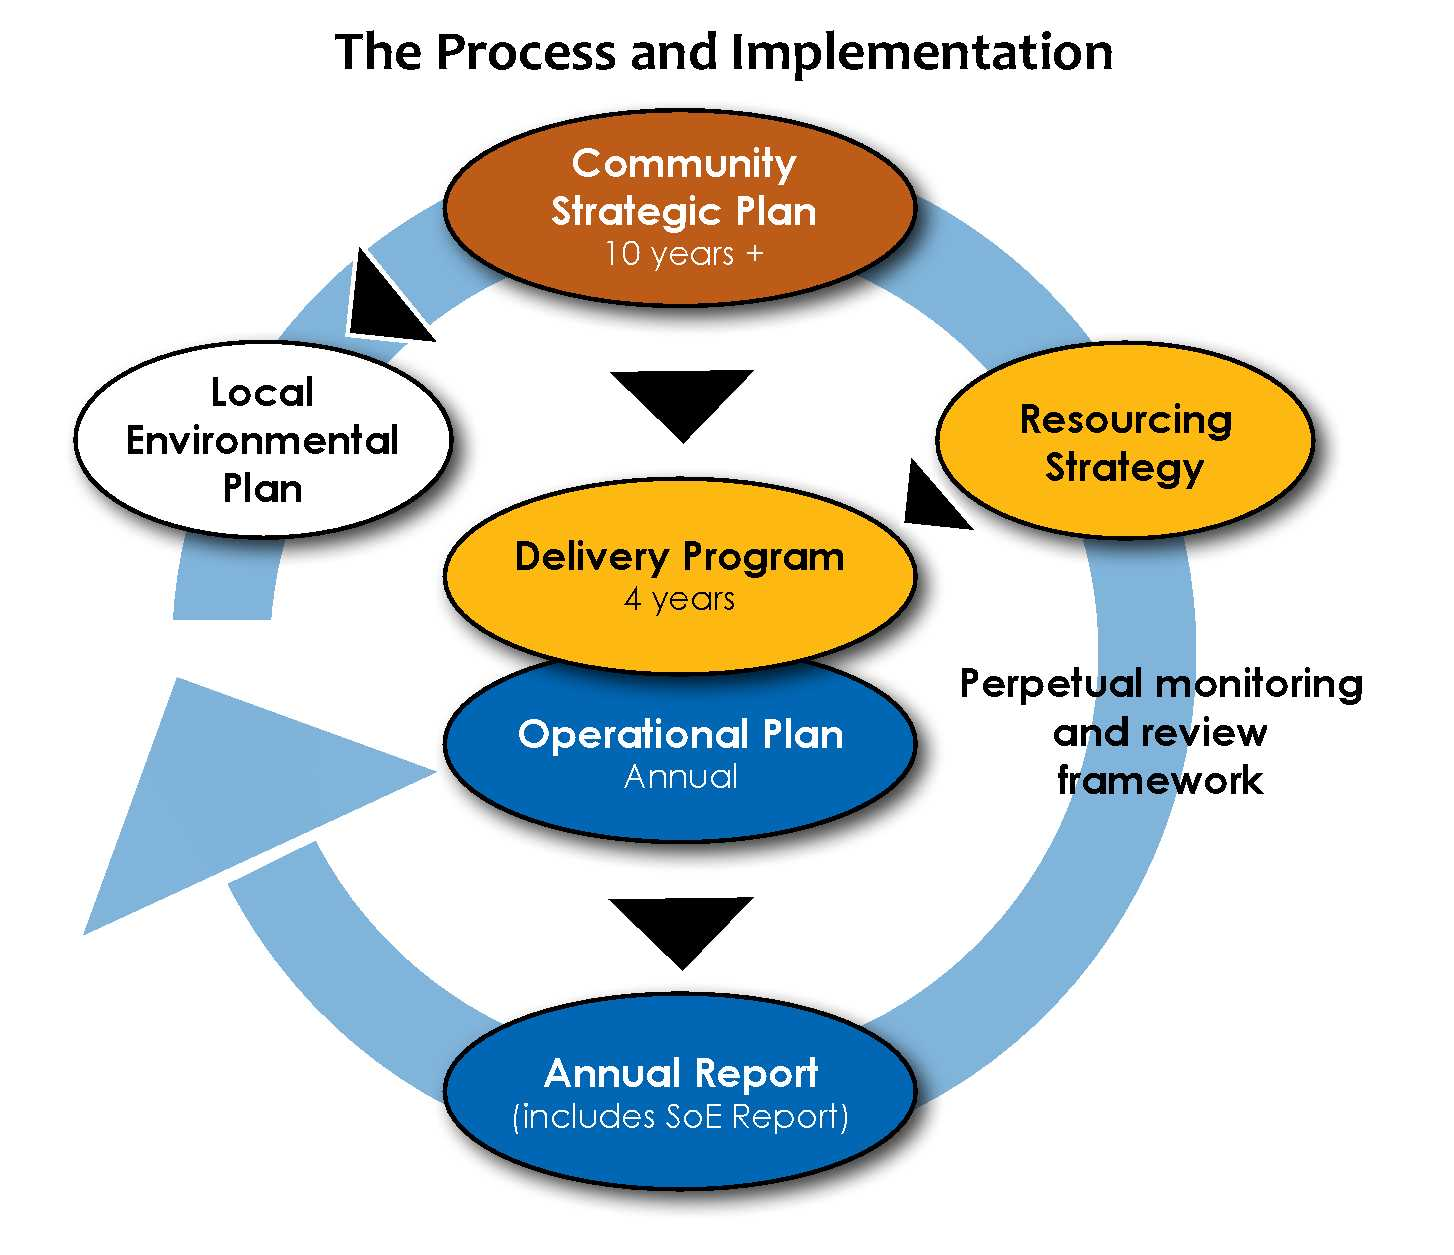 Community Strategic Plan diagram